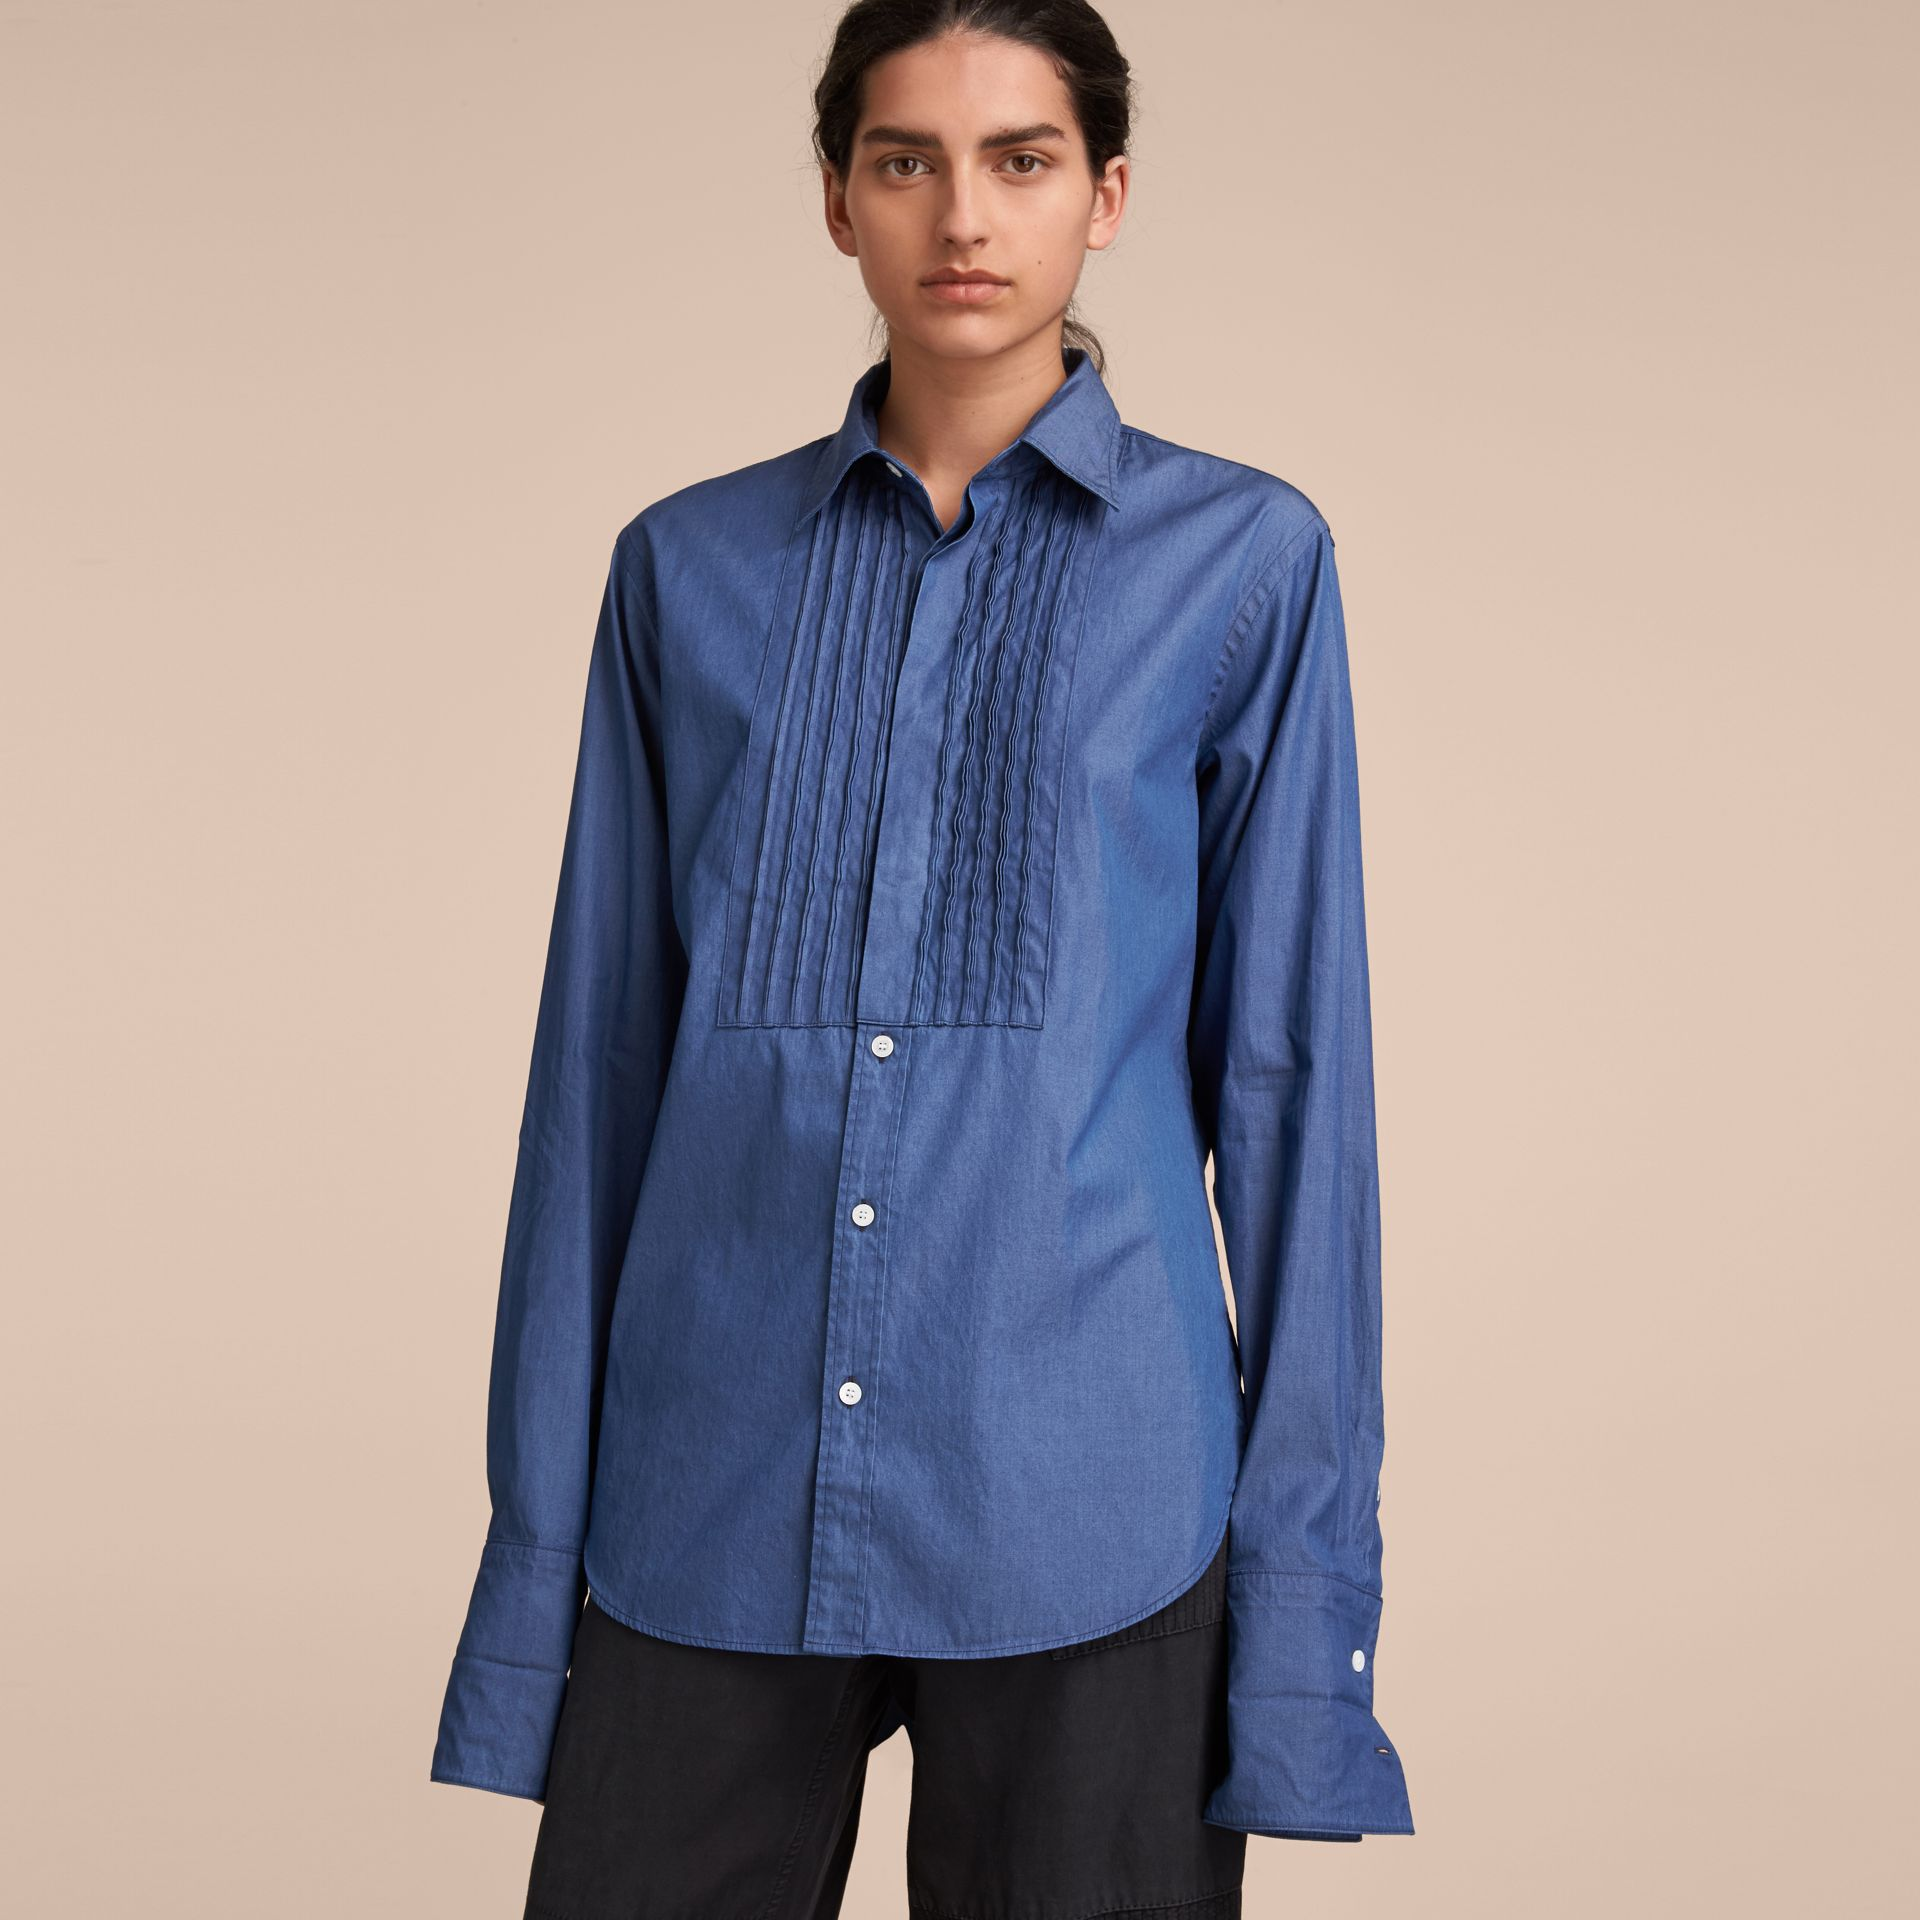 Unisex Double-cuff Pintuck Bib Cotton Shirt in Denim Blue - Women | Burberry Singapore - gallery image 6